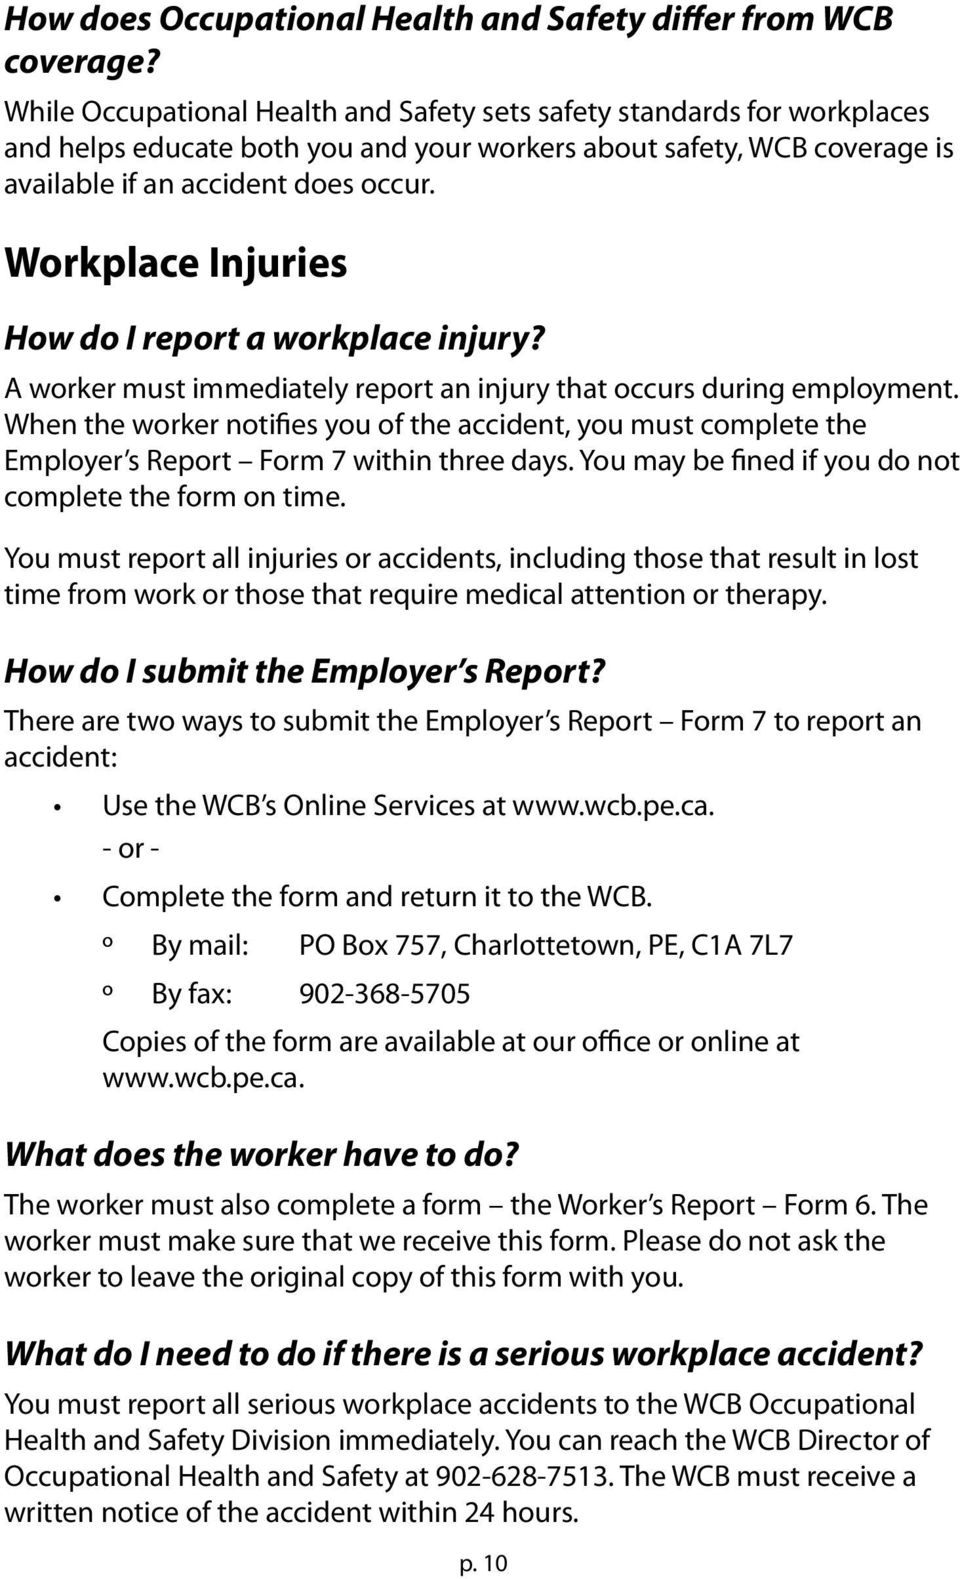 Workplace Injuries How do I report a workplace injury? A worker must immediately report an injury that occurs during employment.